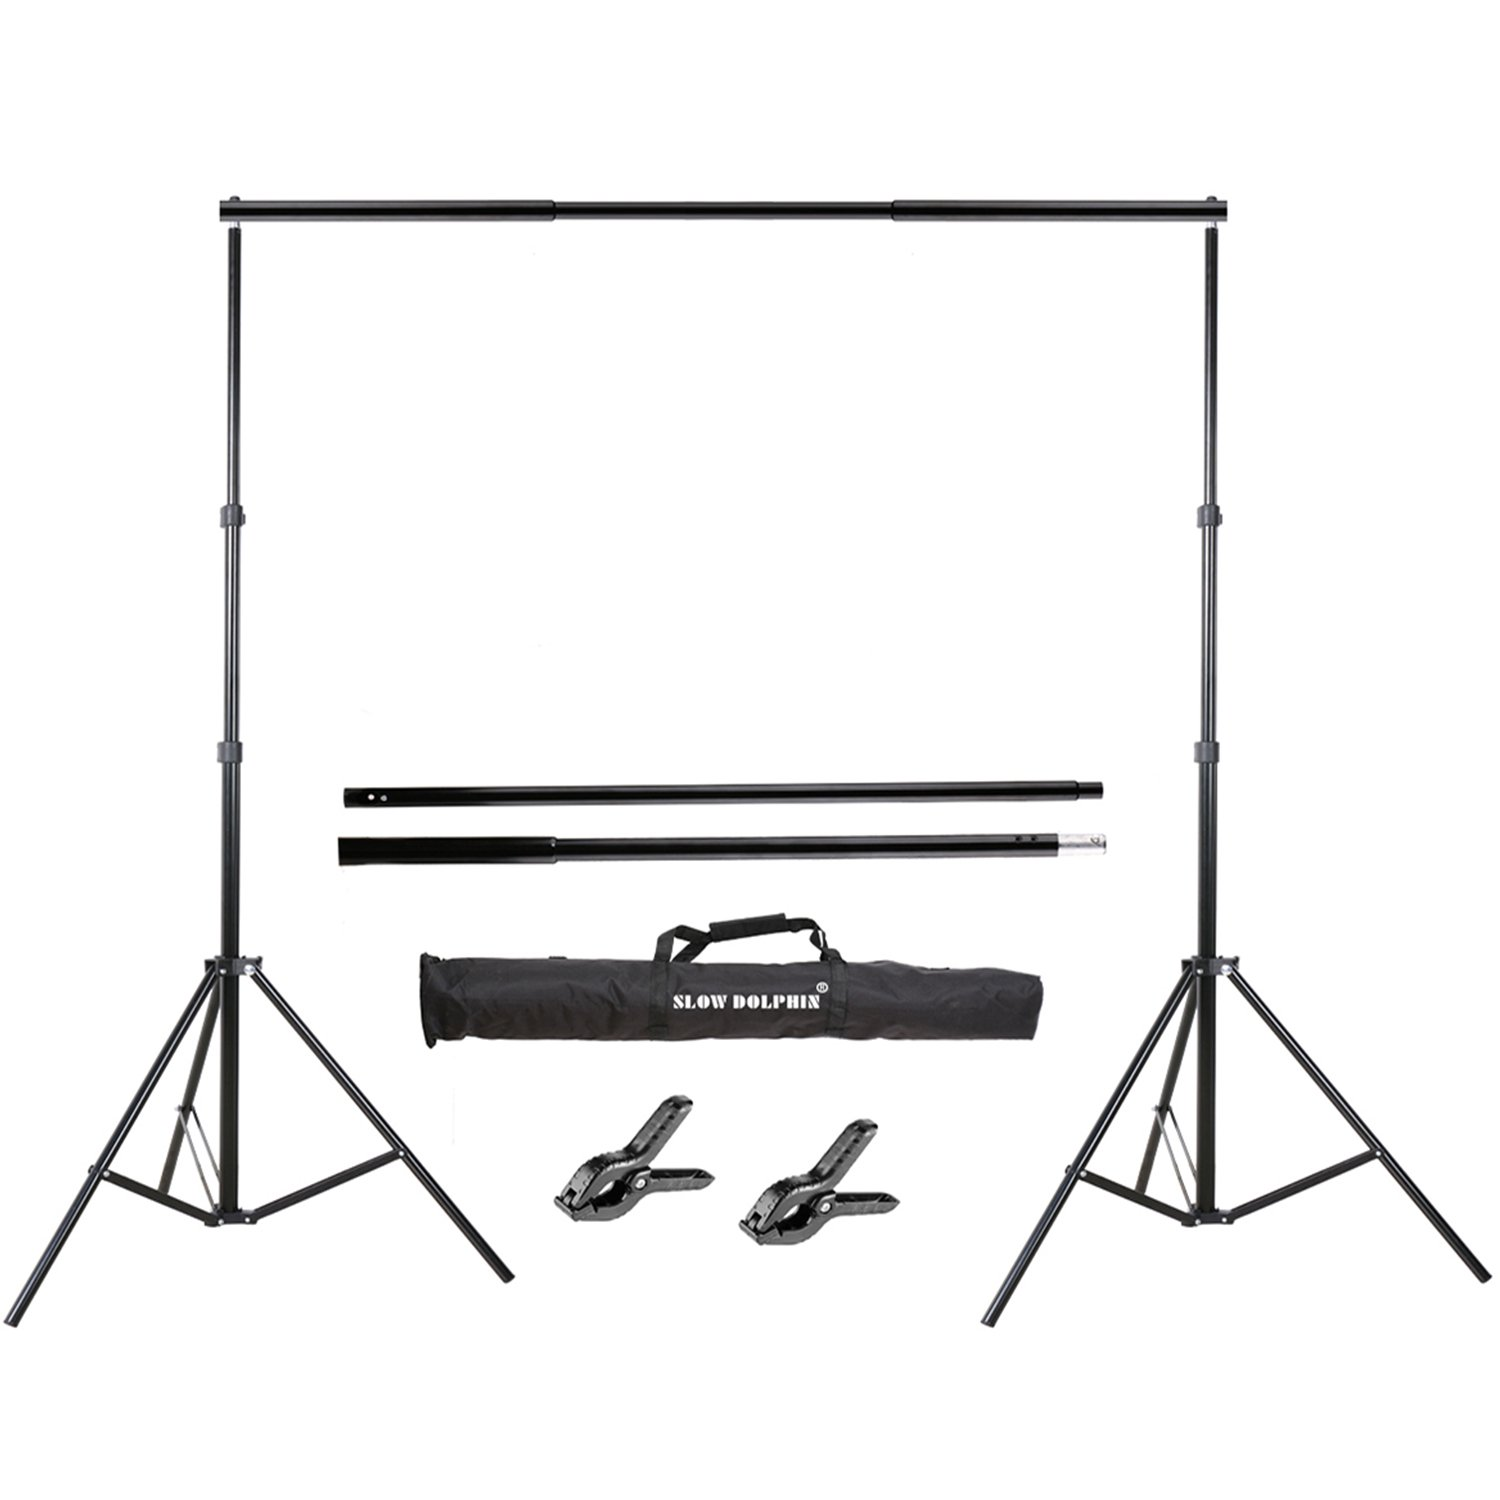 Slow Dolphin Photo Video Studio 10Ft Adjustable Backdrop Support System Kit Background Stand with Carry Bag by SLOW DOLPHIN